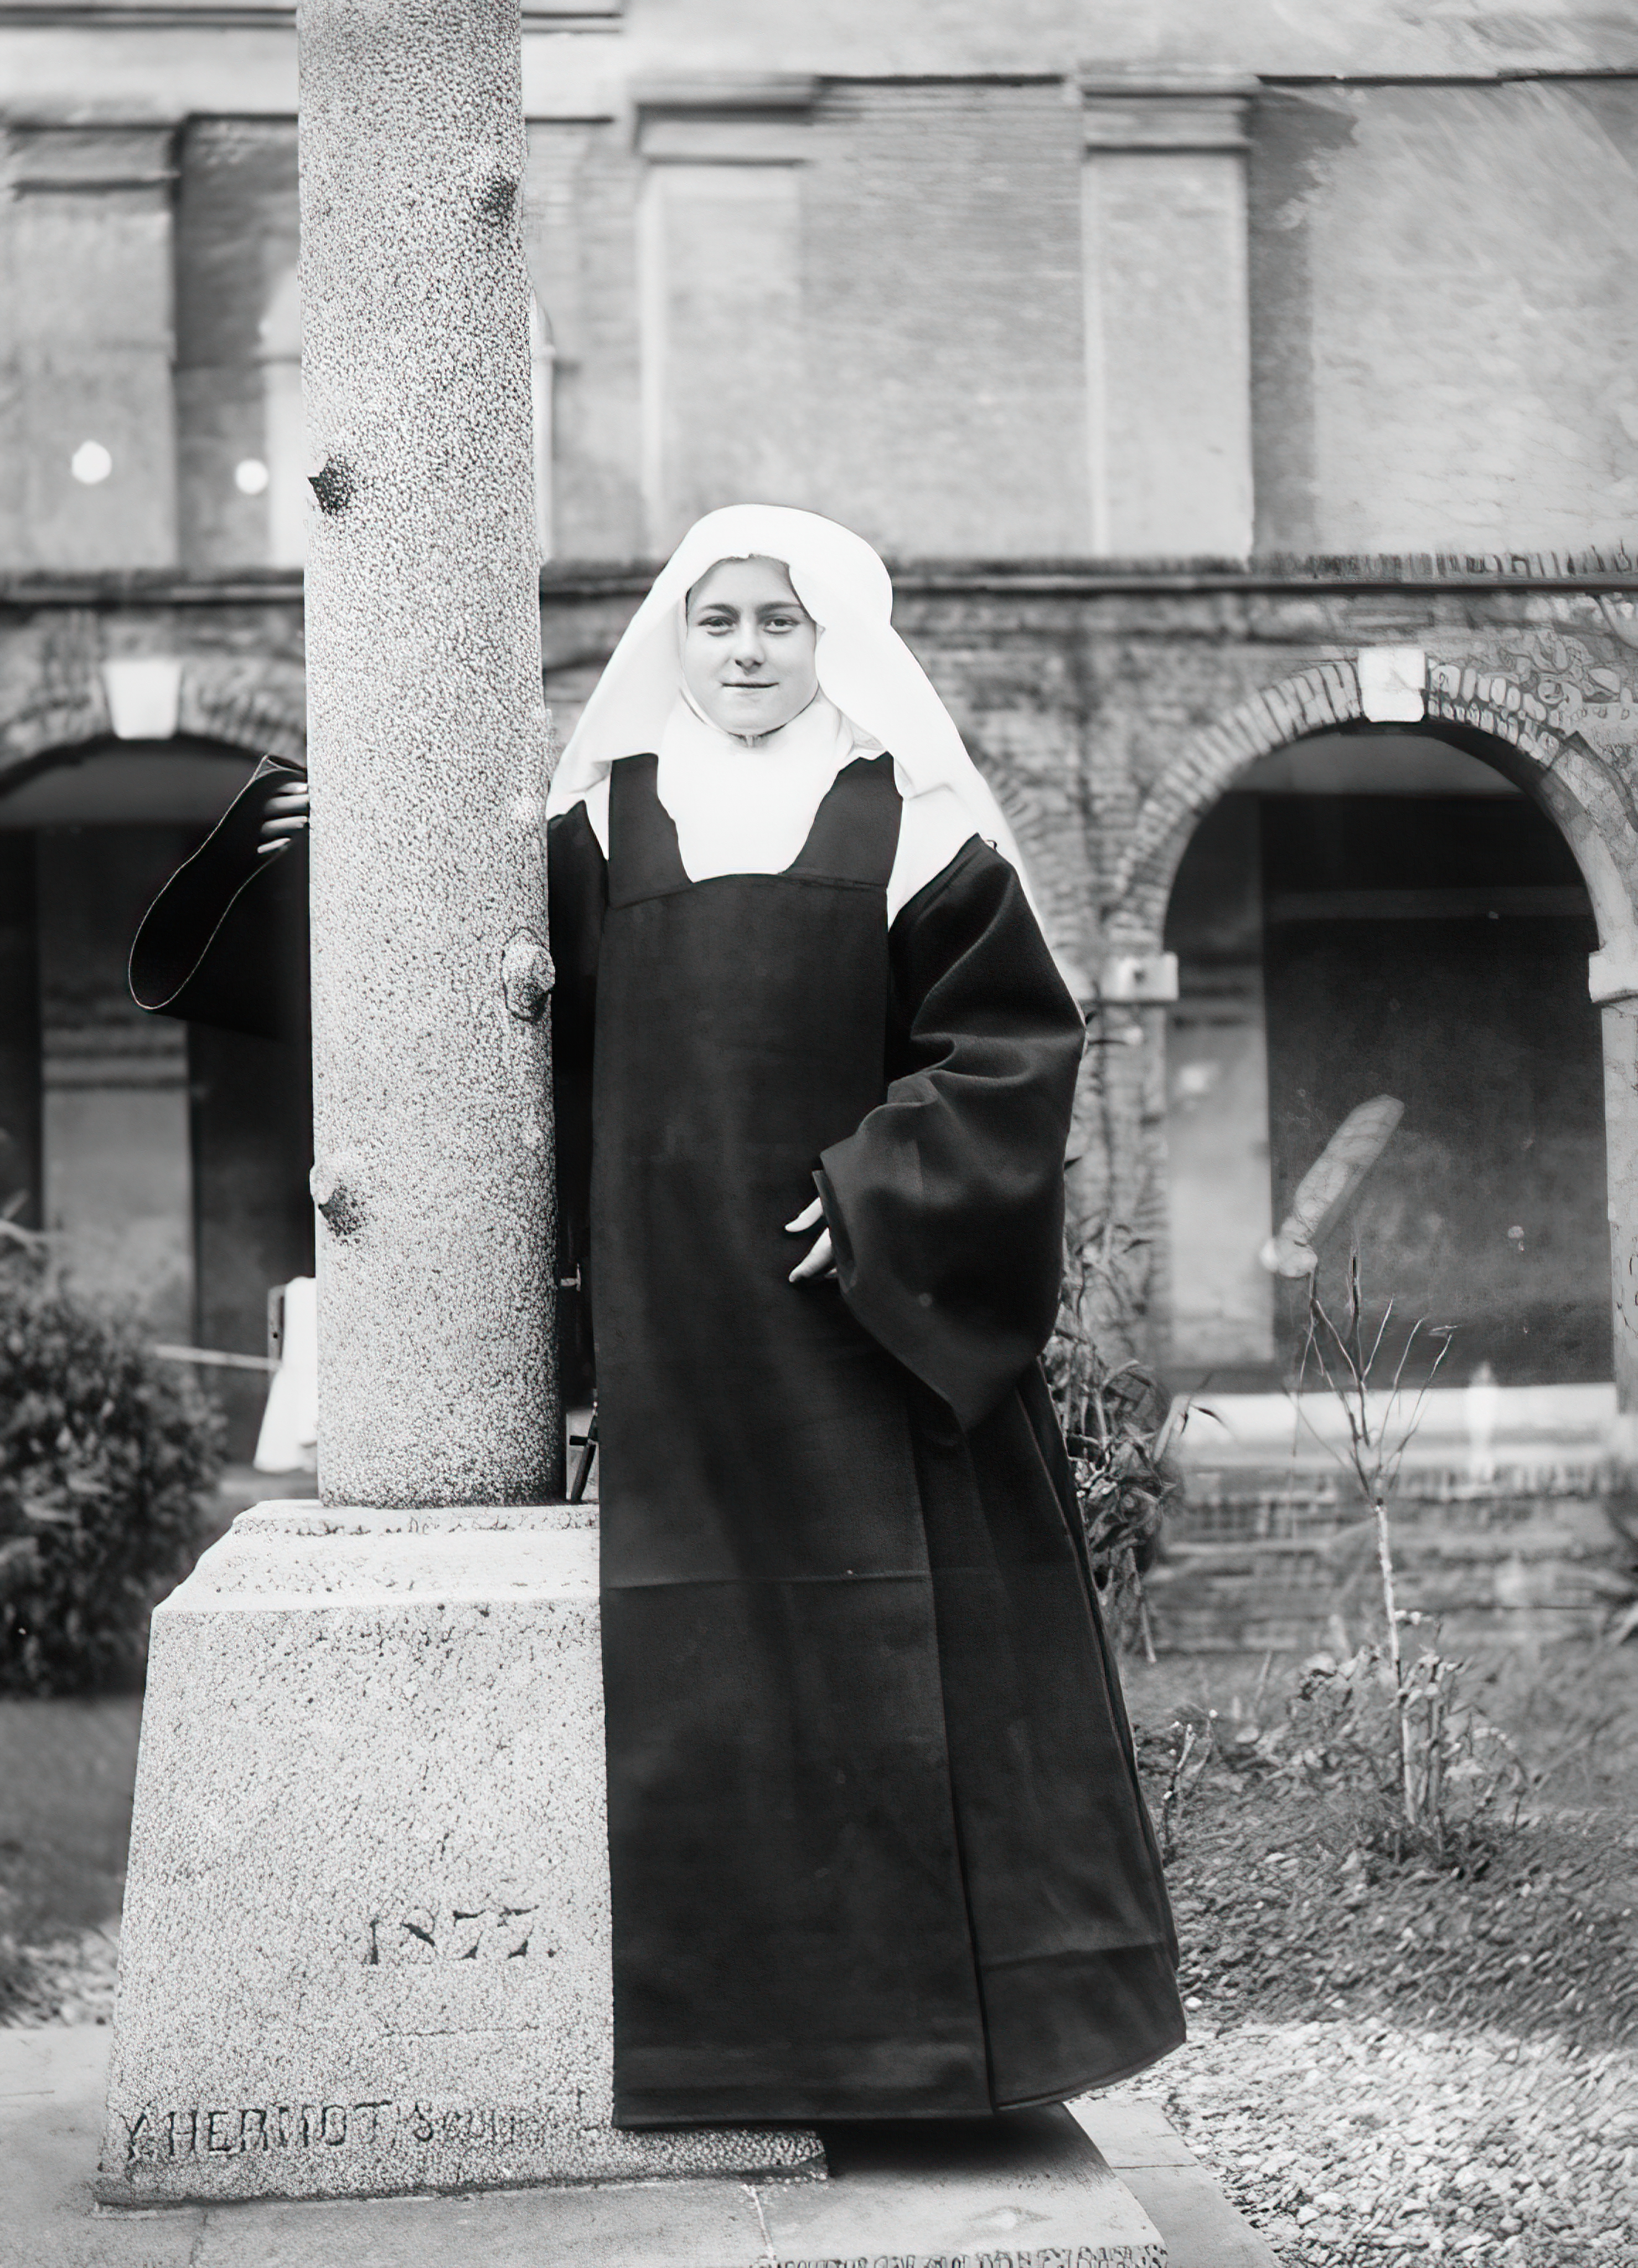 St Therese the Little Flower next to a pillar